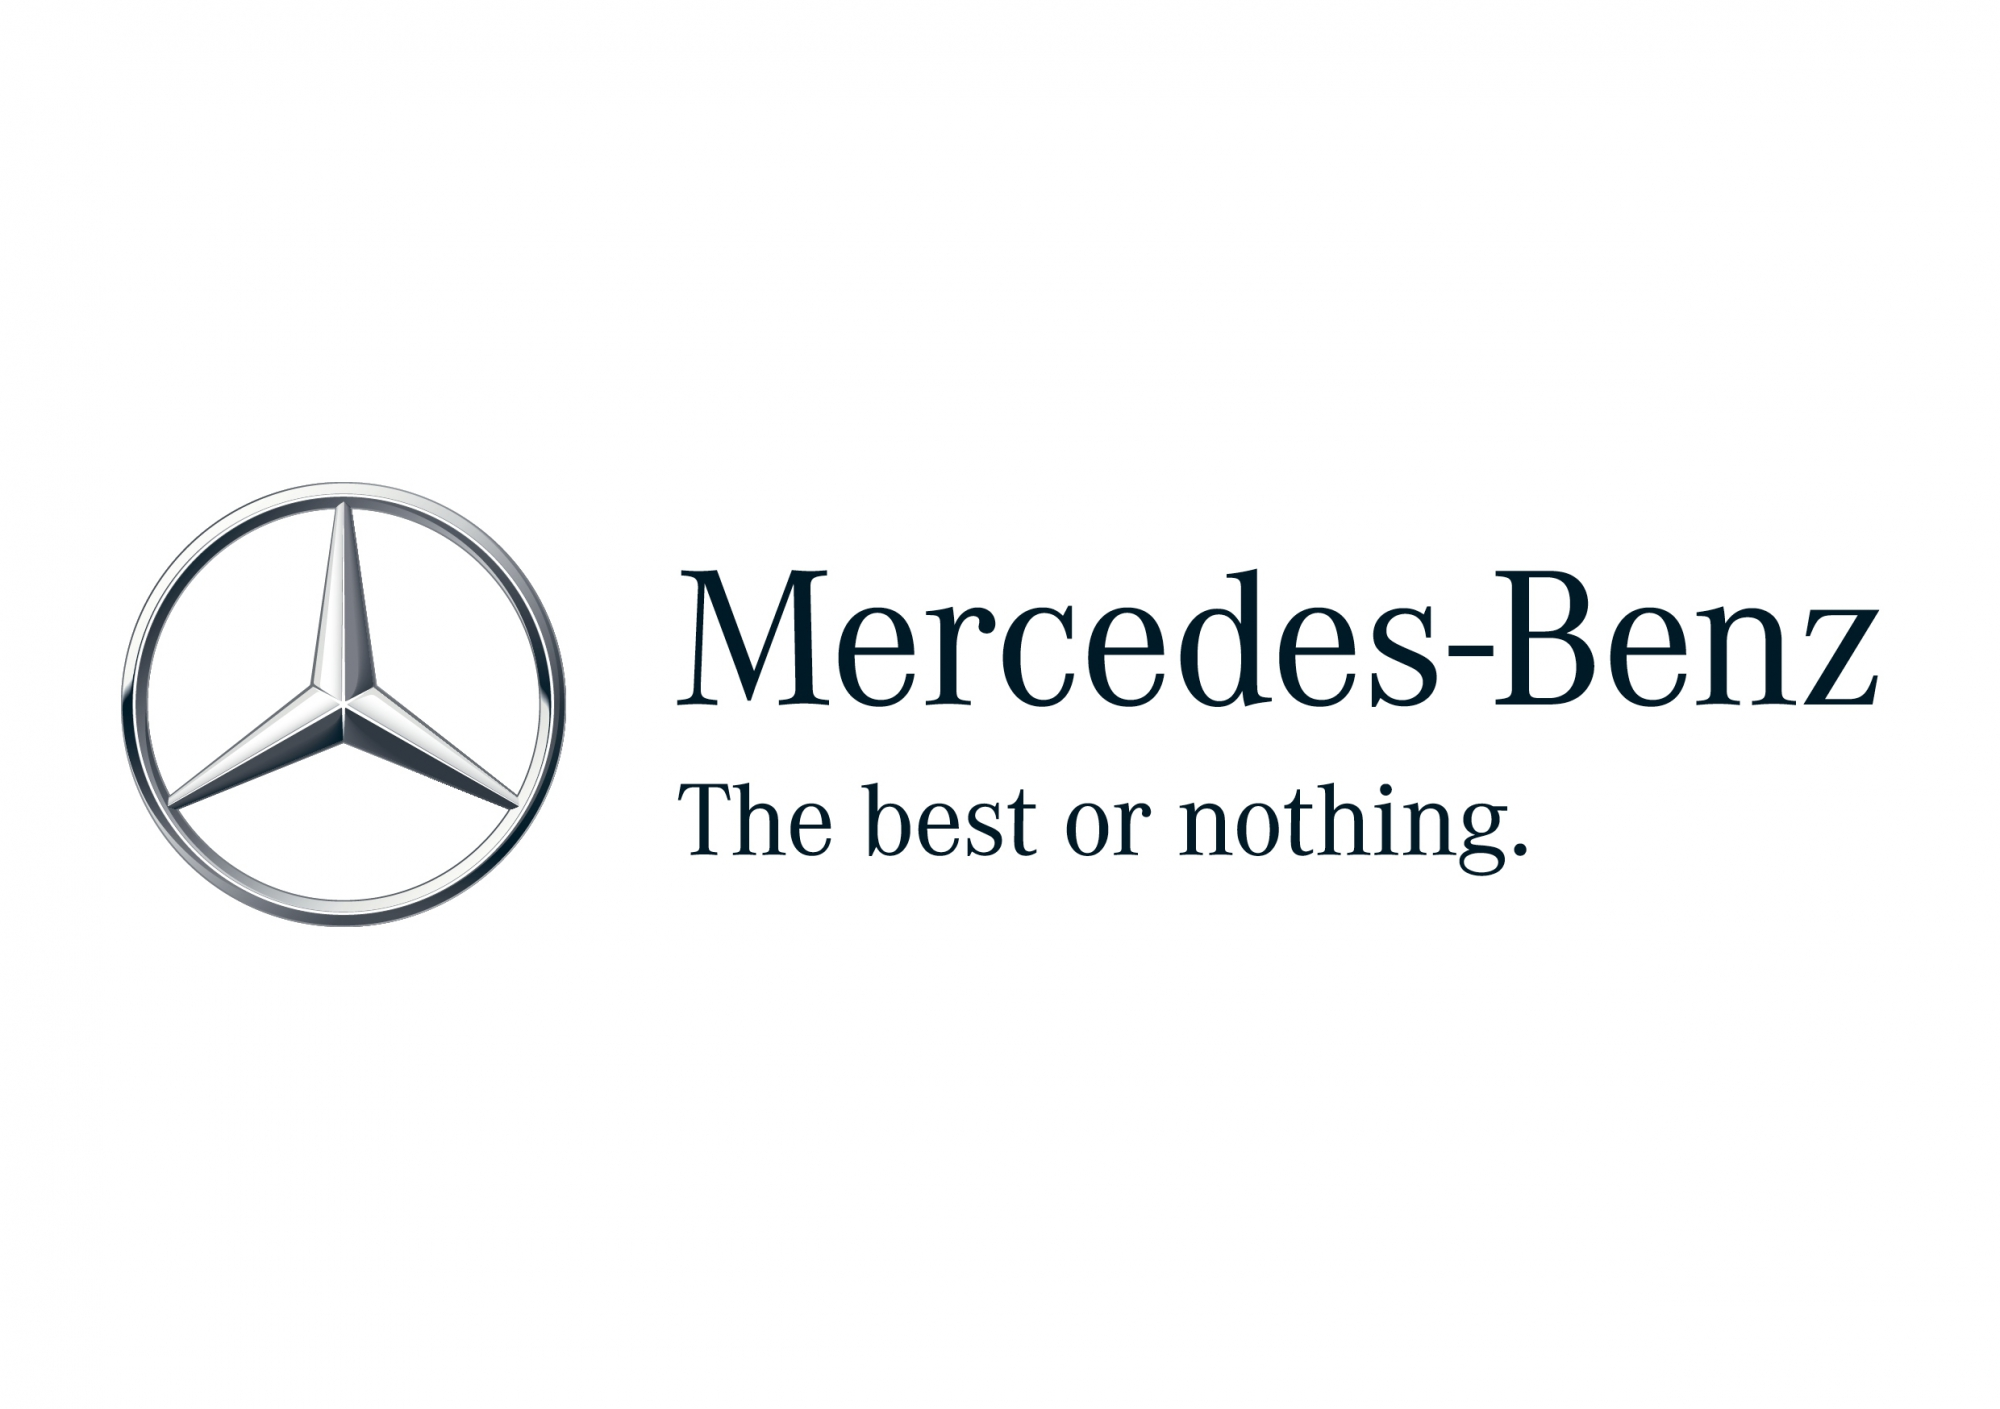 mercedes benz weaknesses For mercedes-benz, conversations around fuel efficiency and luxury stand out for bmw, speed and handling were key topics uncovering the language that the public associates with these automobile companies finally reveals the divide between their branding.